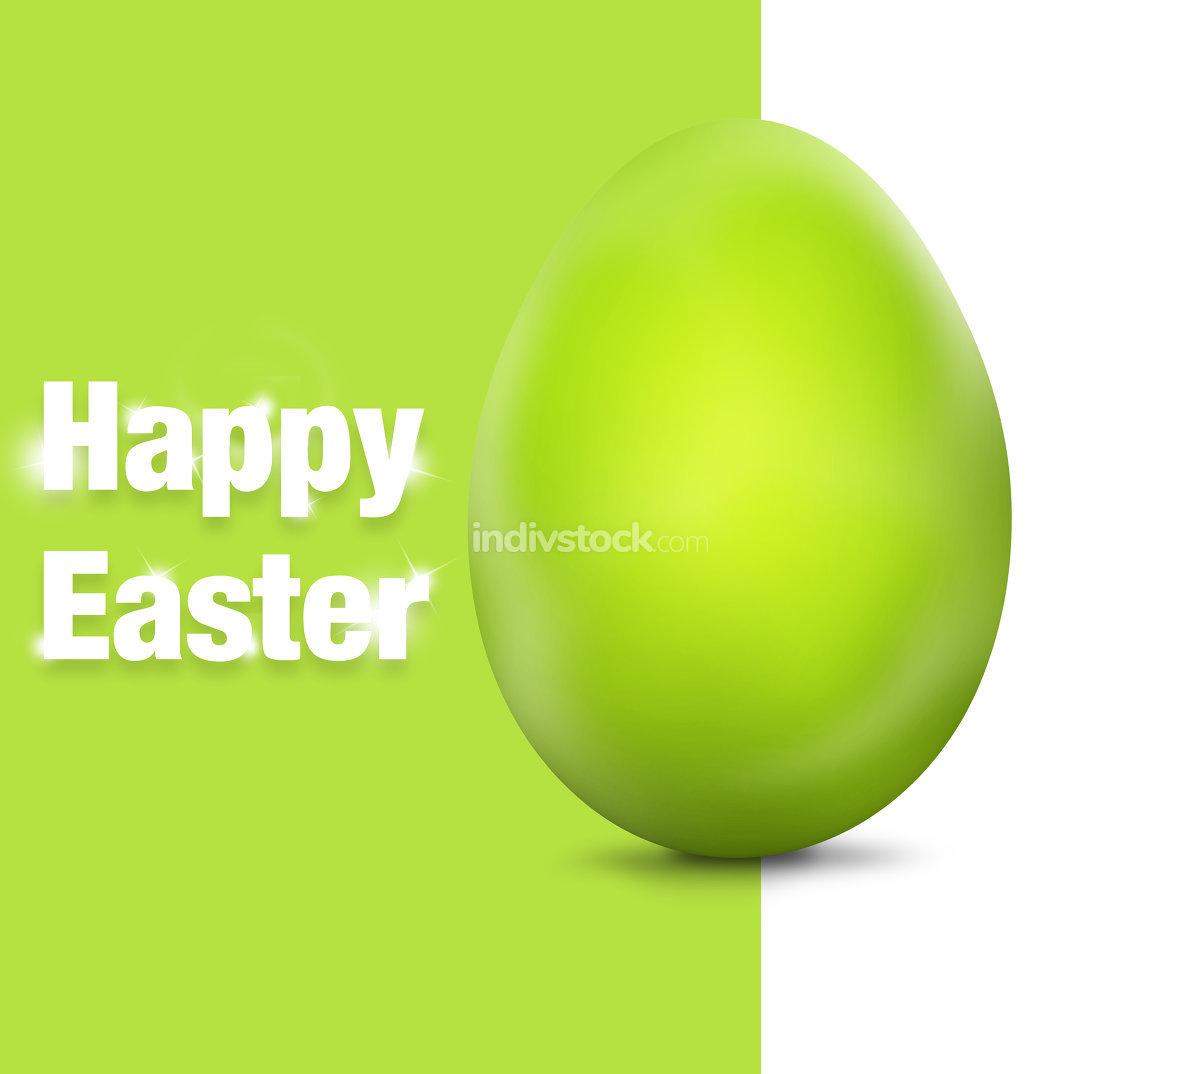 Happy Easter Egg Festive Elements